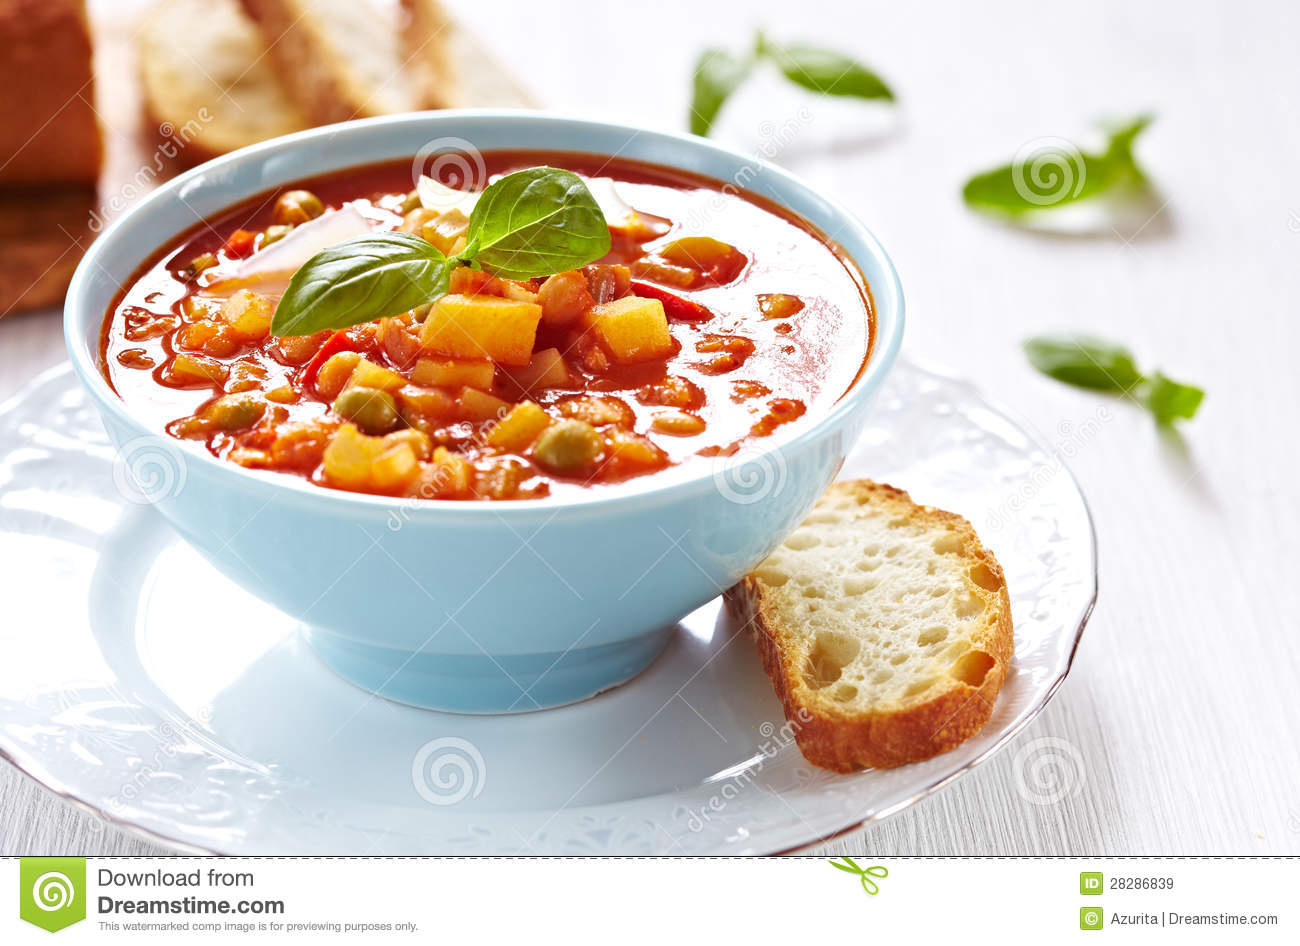 Minestrone Soup With Bread Royalty Free Stock Images - Image: 28286839